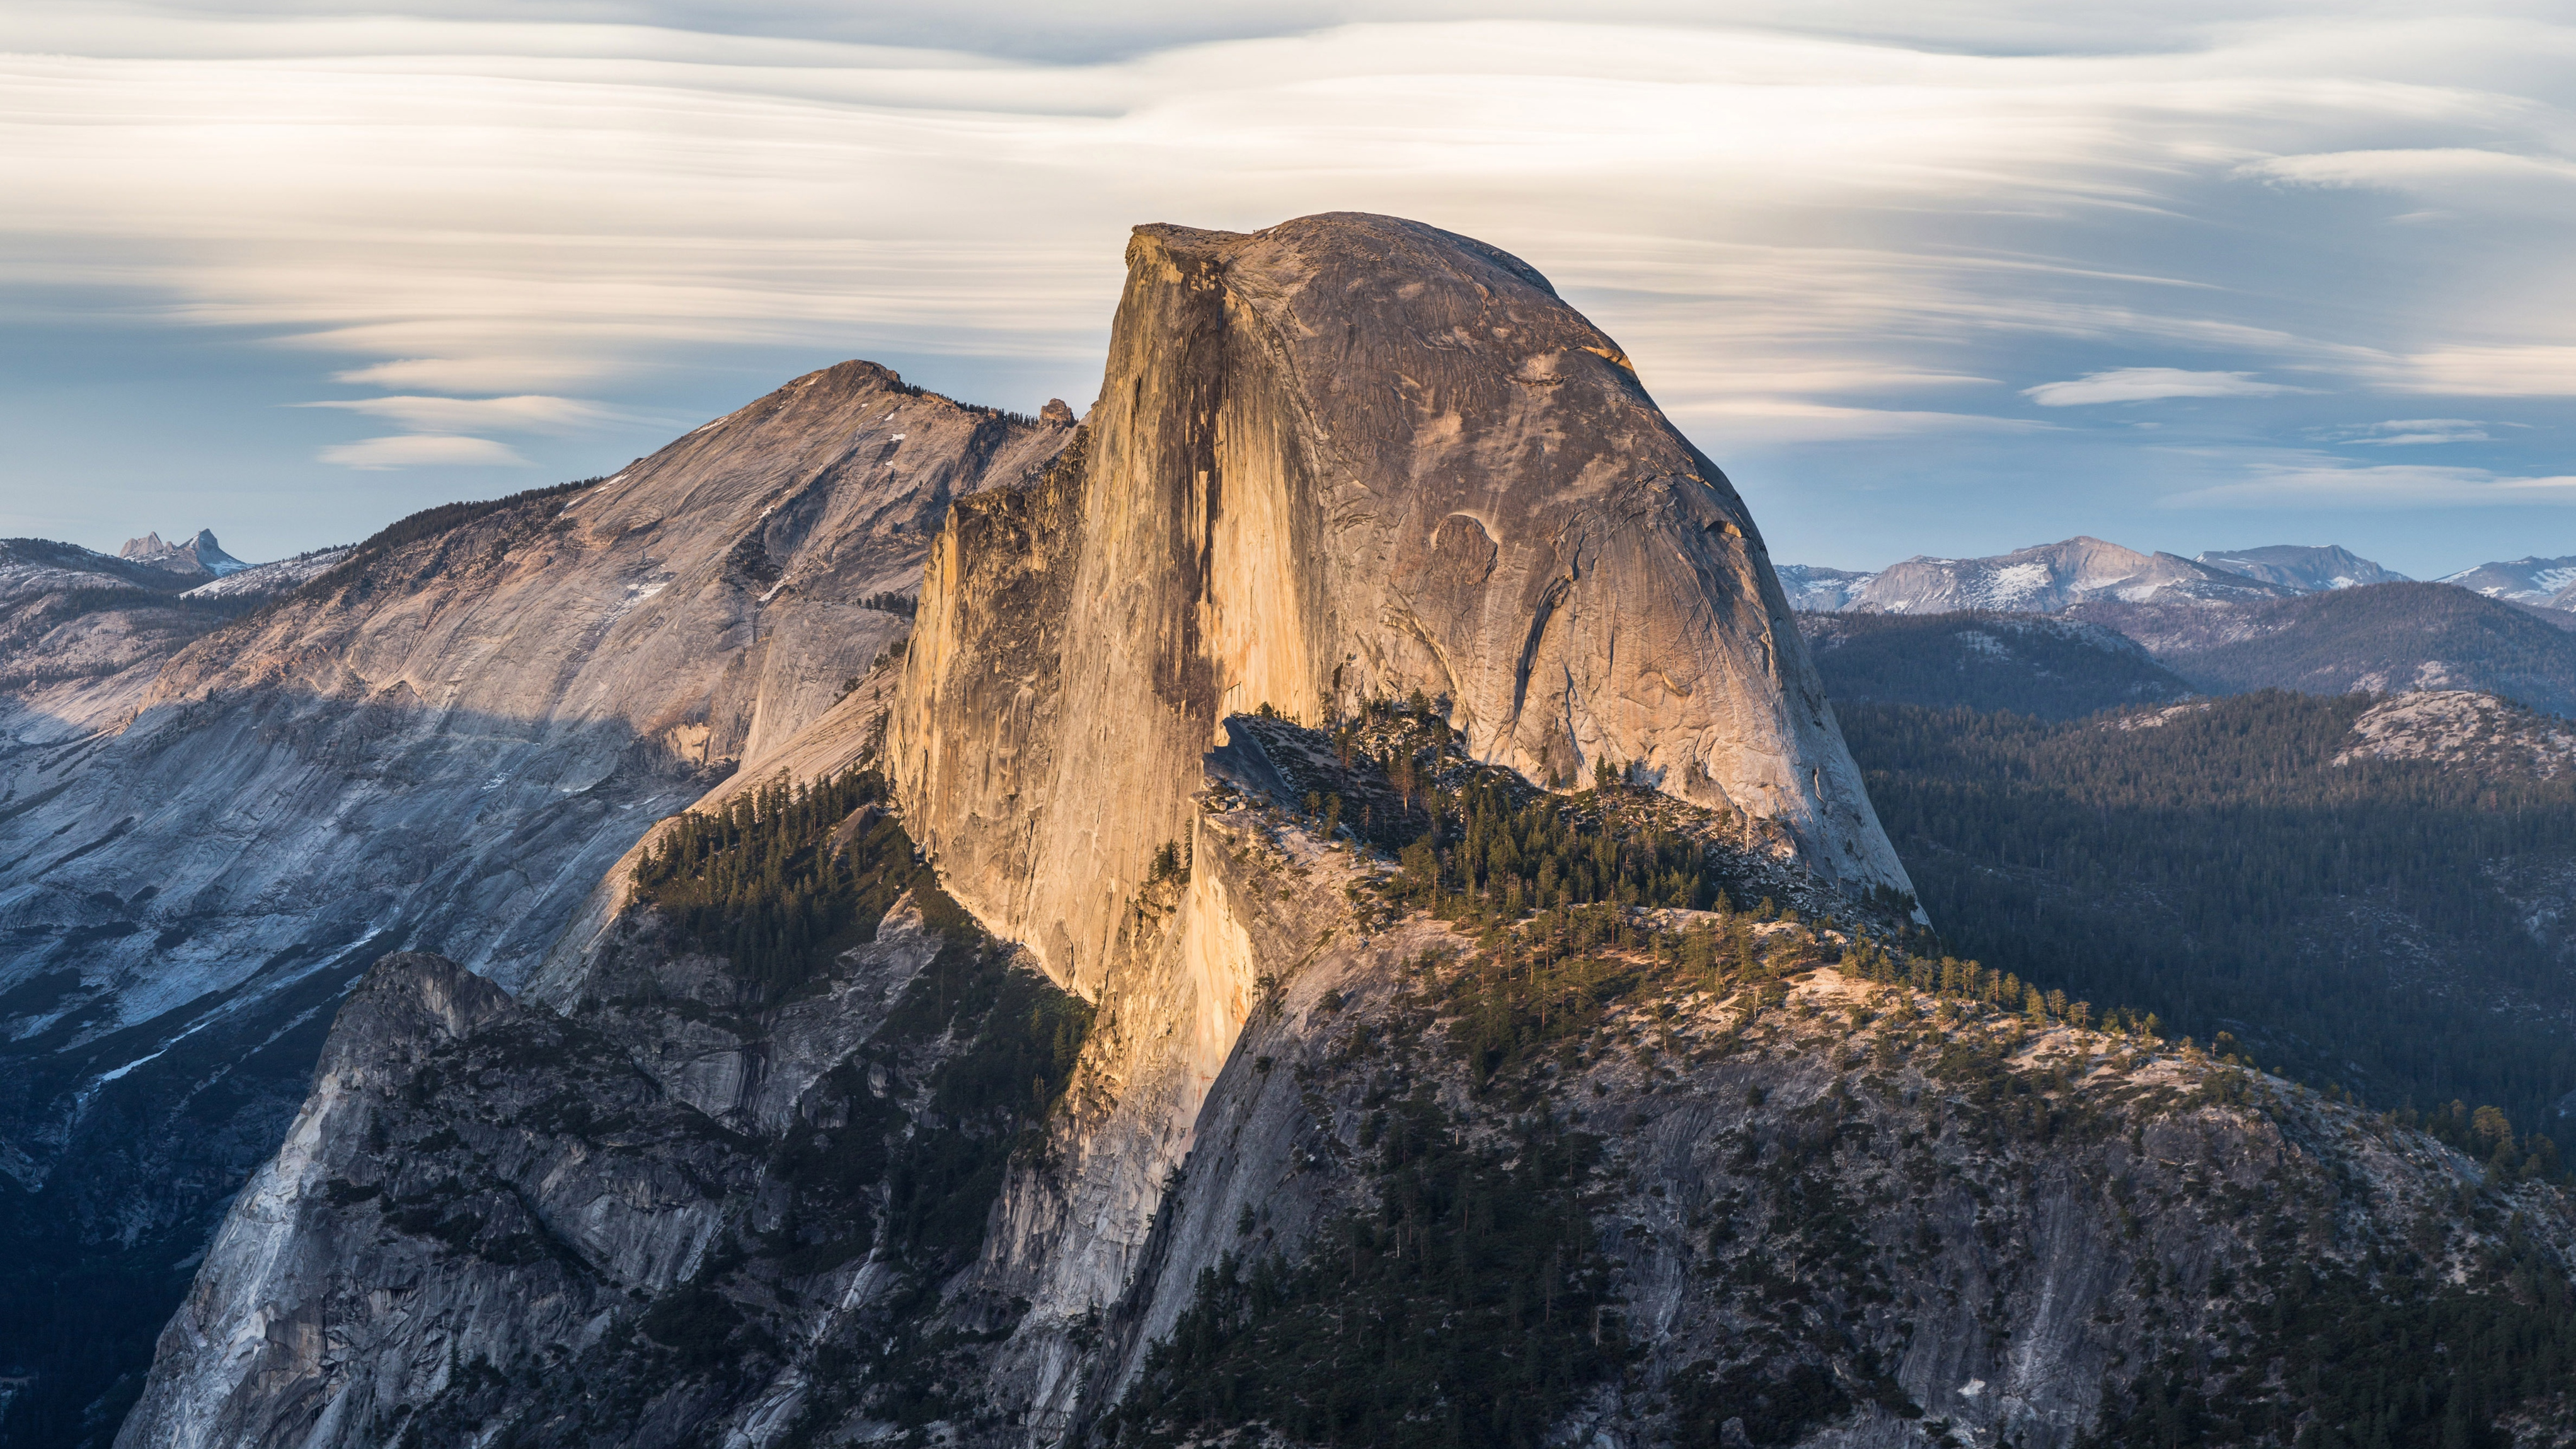 10 BARTable Spring Break ideas that won't break the bank. Half Dome is BARTable.